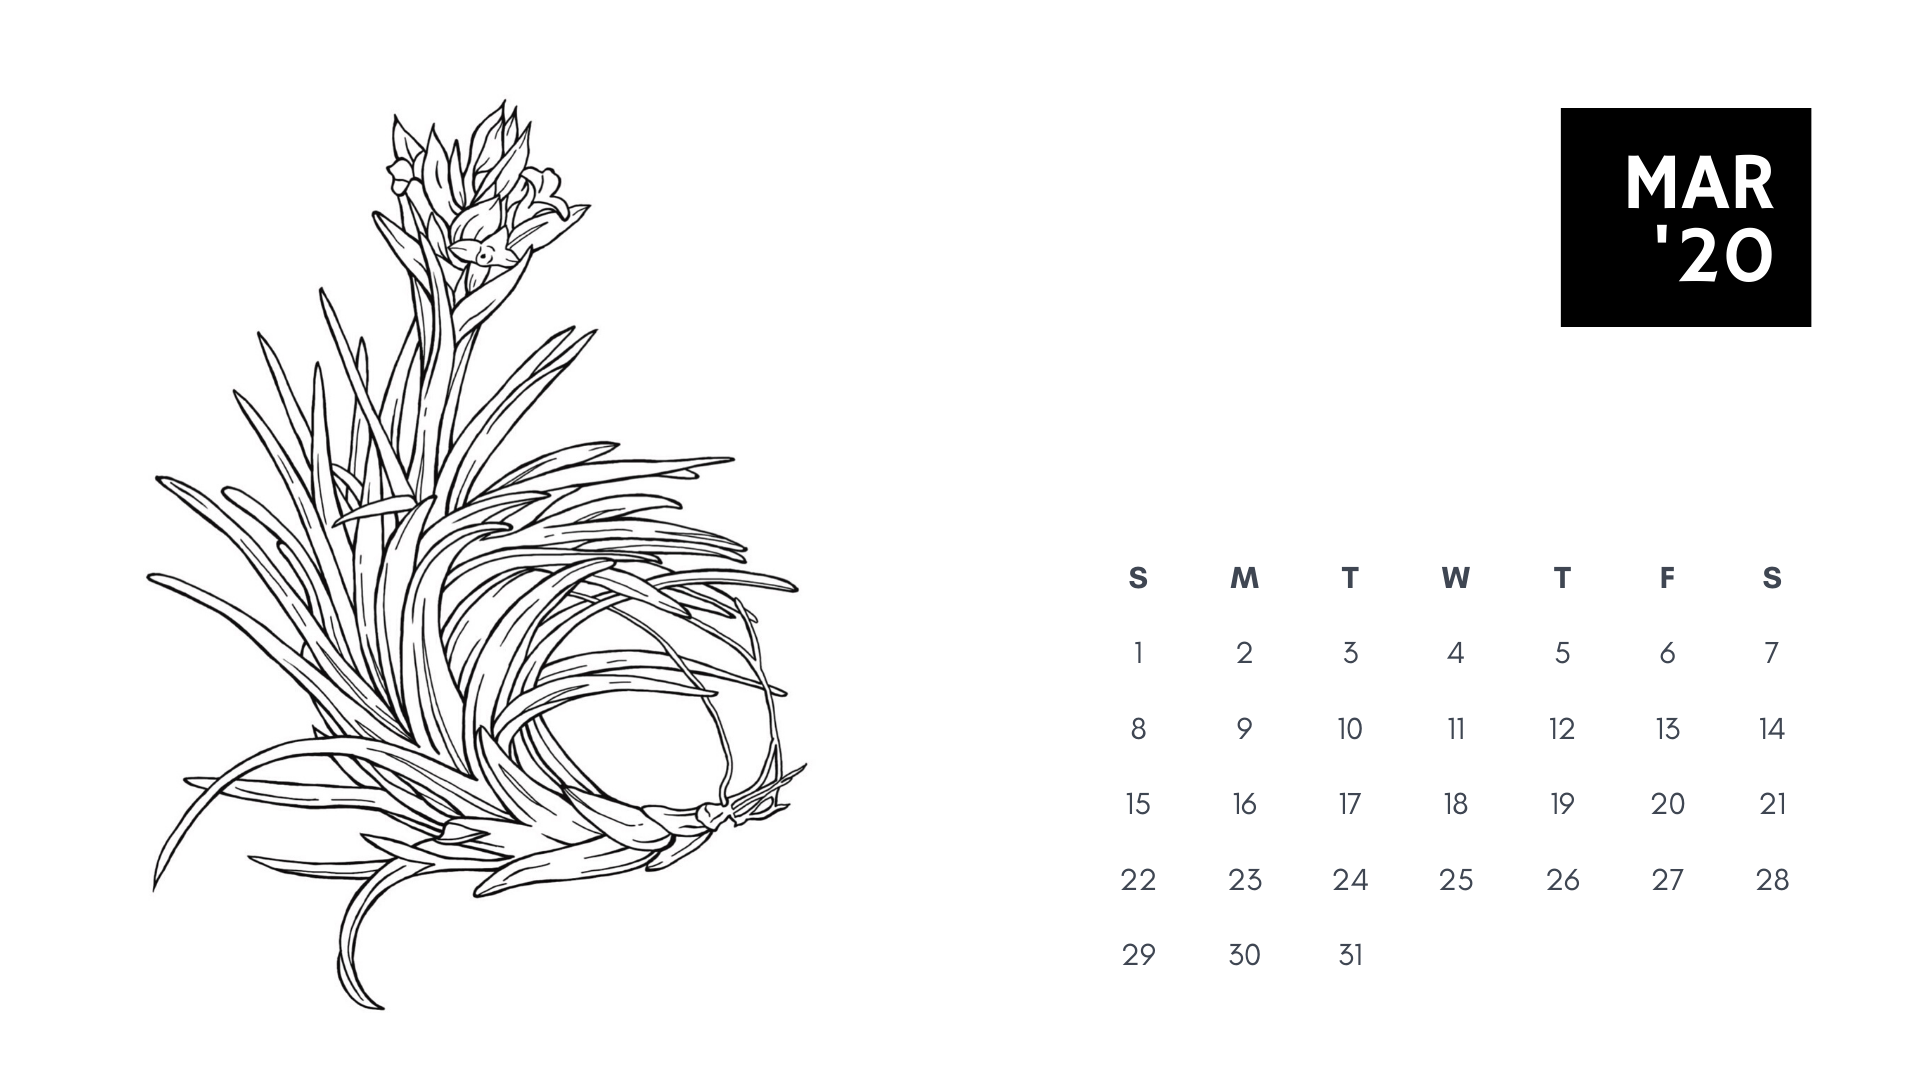 march 2020 coloring book calendar